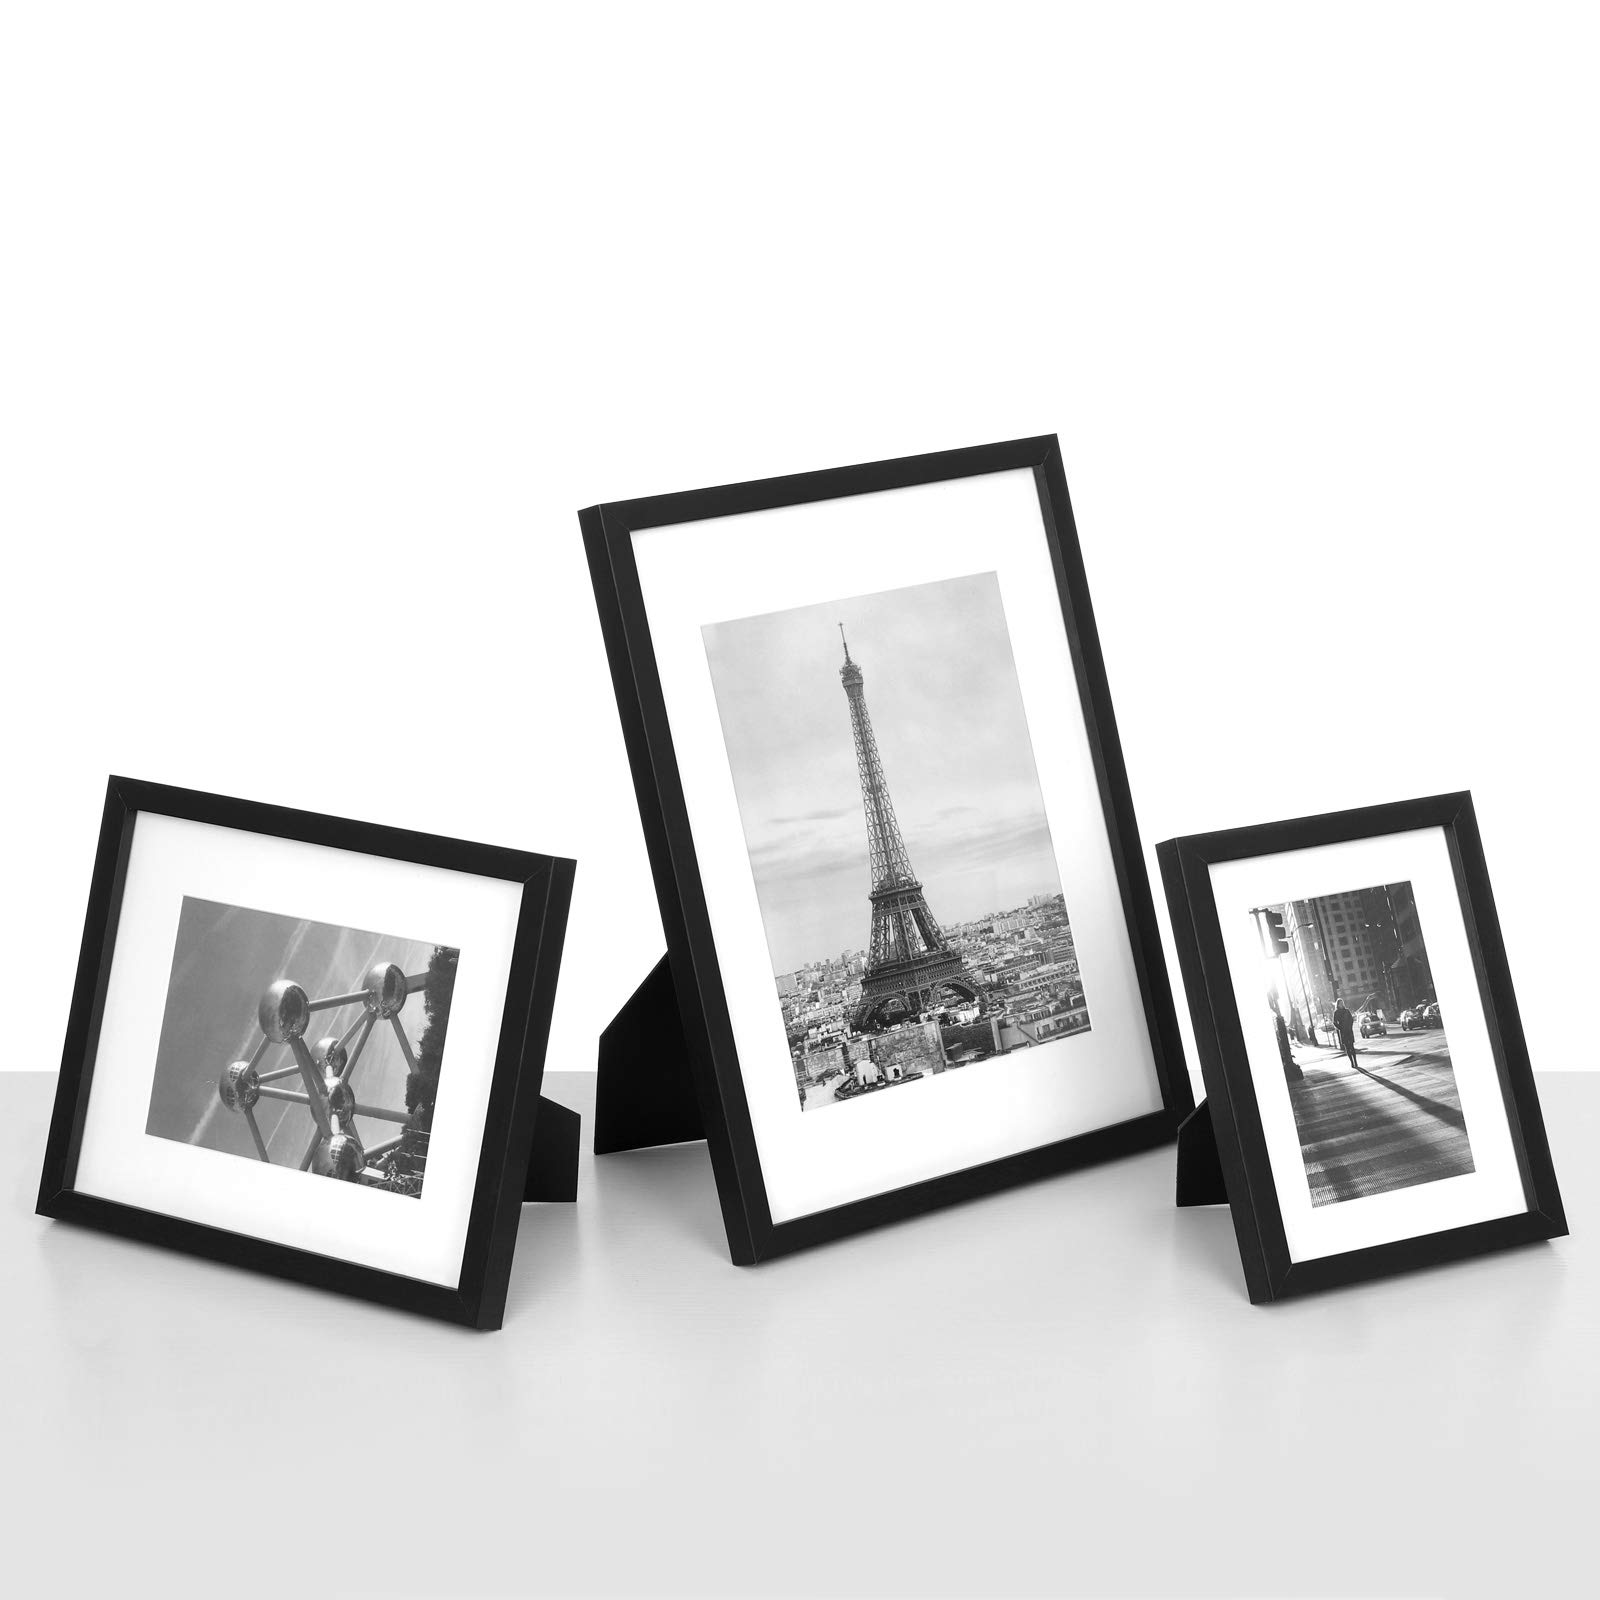 SONGMICS Picture Frames Set of 7 Pieces, One 11 x 14 Inches, Two 8 x 10 Inches, Four 6 x 8 Inches, with White Mat Real Glass, for Multiple Photos, Black Wood Grain URPF37BK by SONGMICS (Image #6)